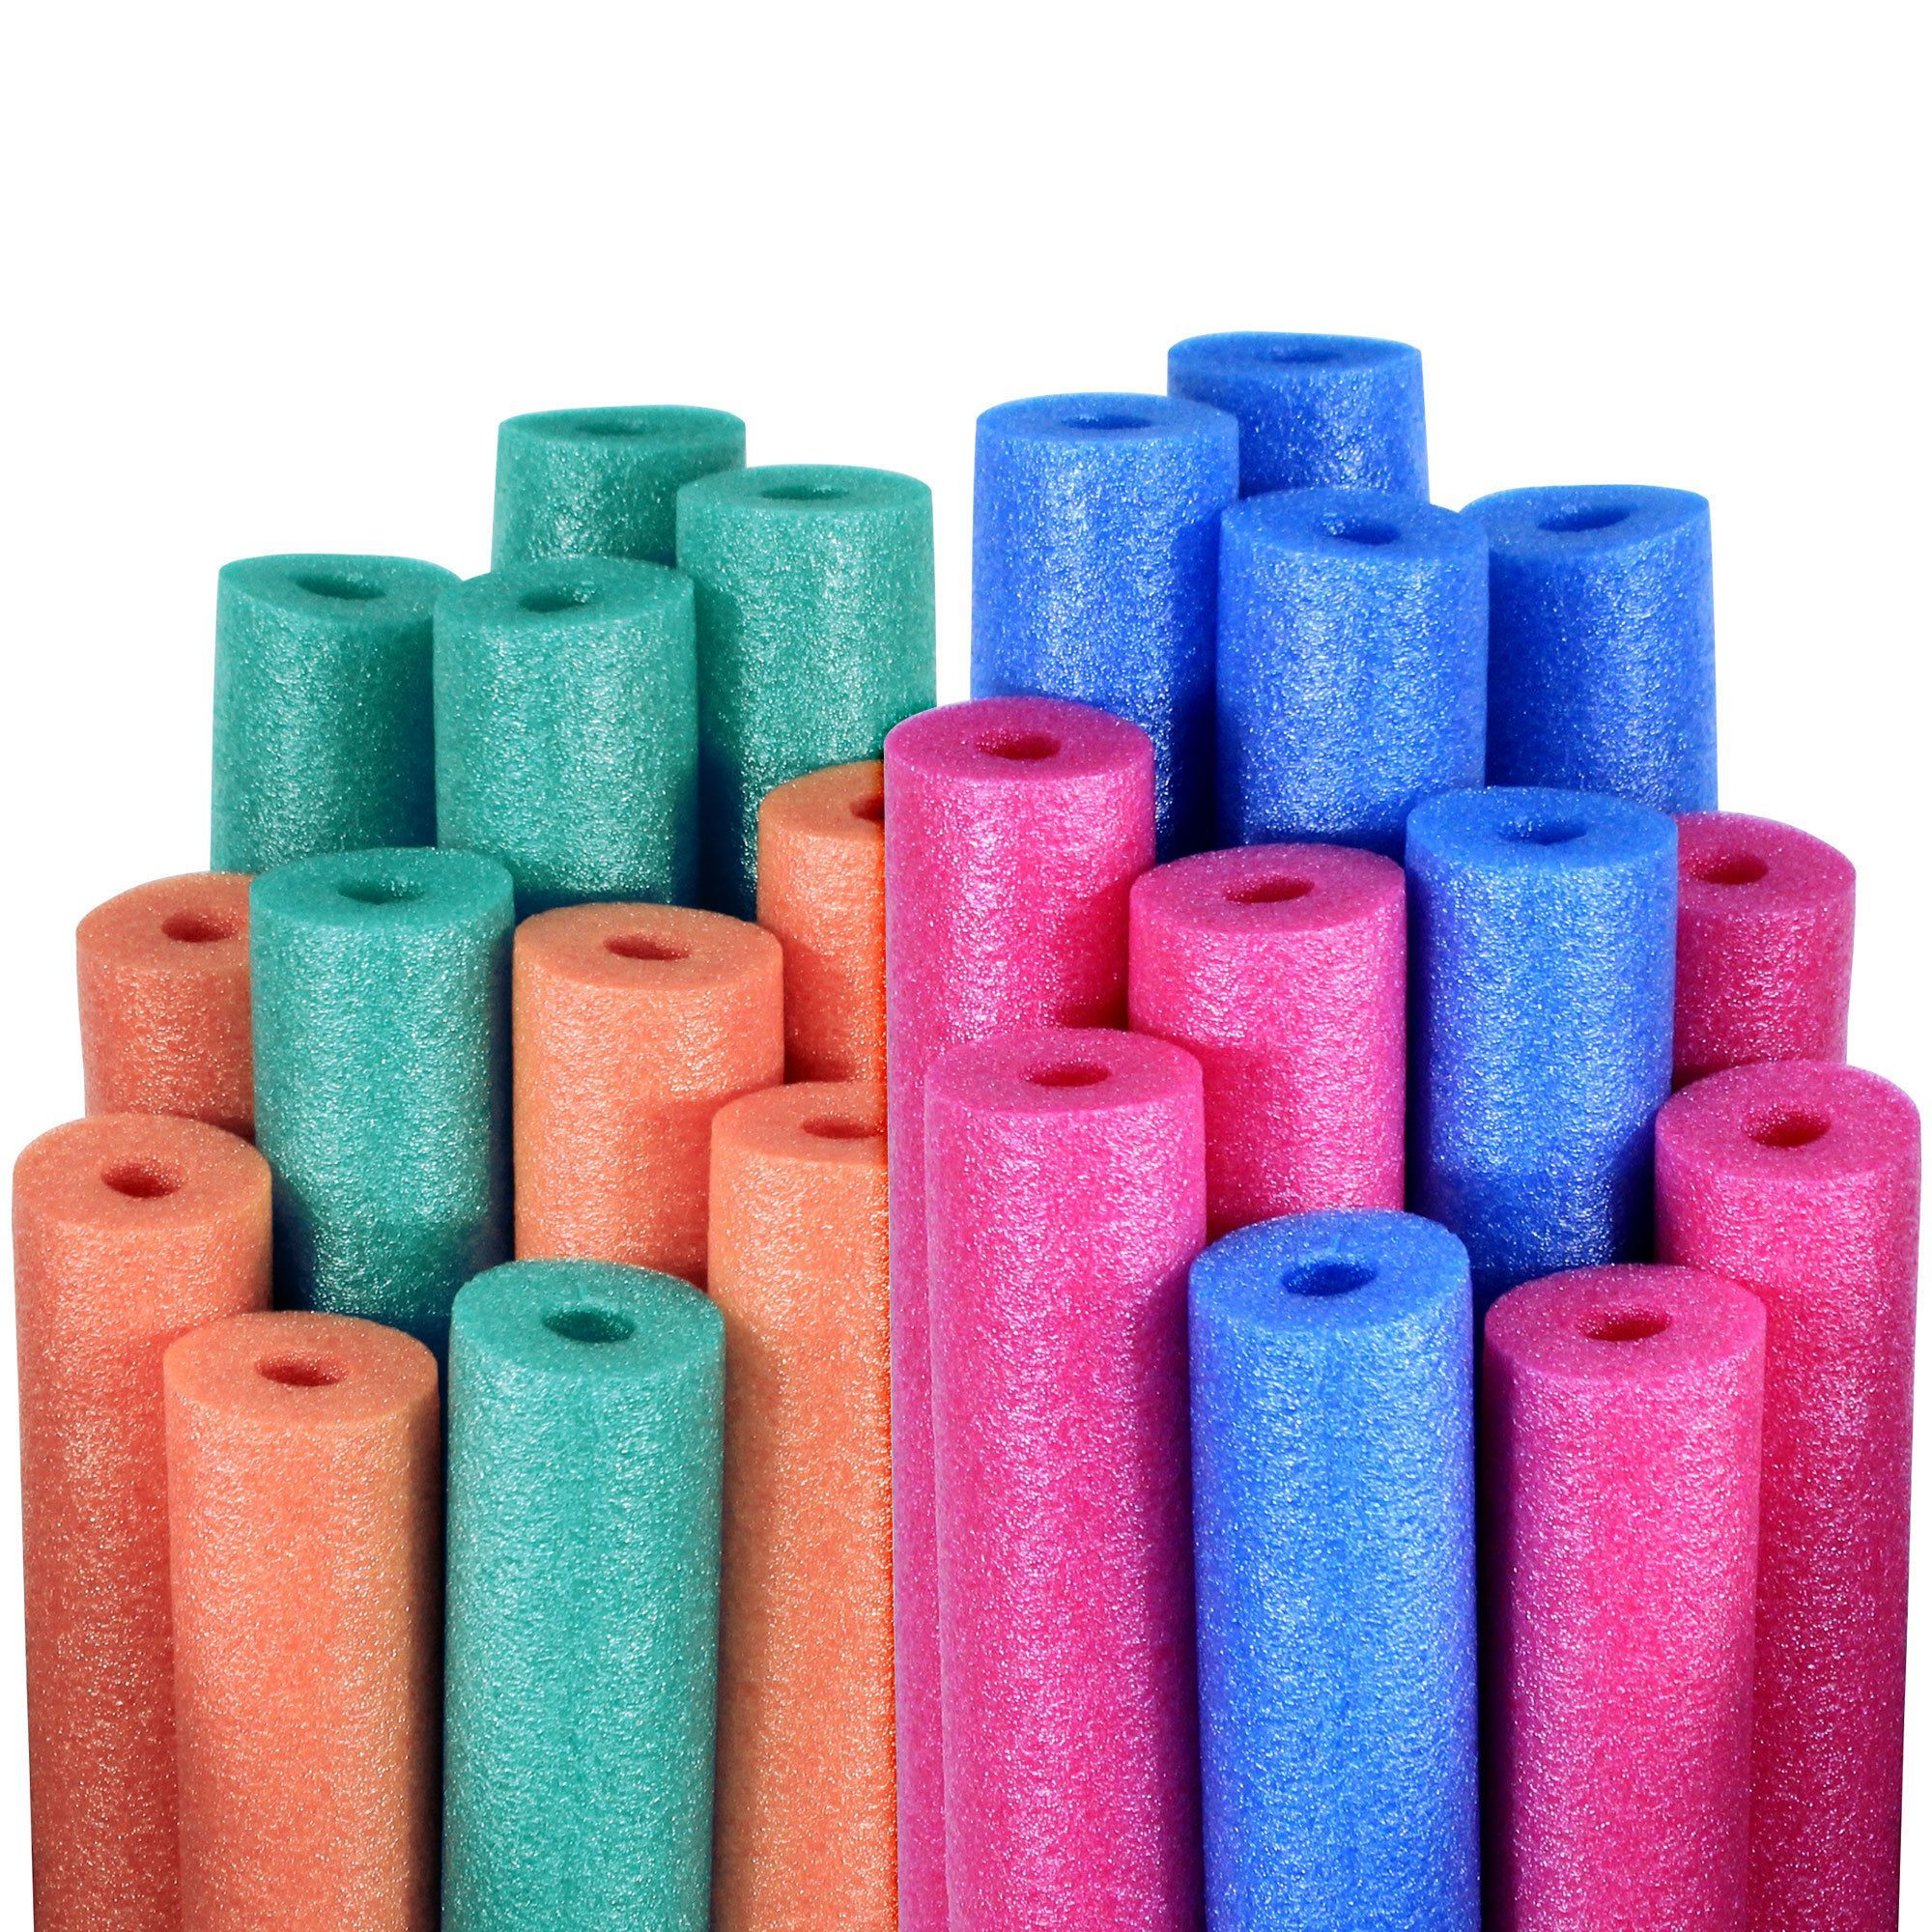 Robelle Water Noodles Blue Pink Teal And Orange 24 Pack Blue Pink Teal And Orange 24 Pack Mult Swimming Pool Noodles Swimming Pool Water Water Noodles